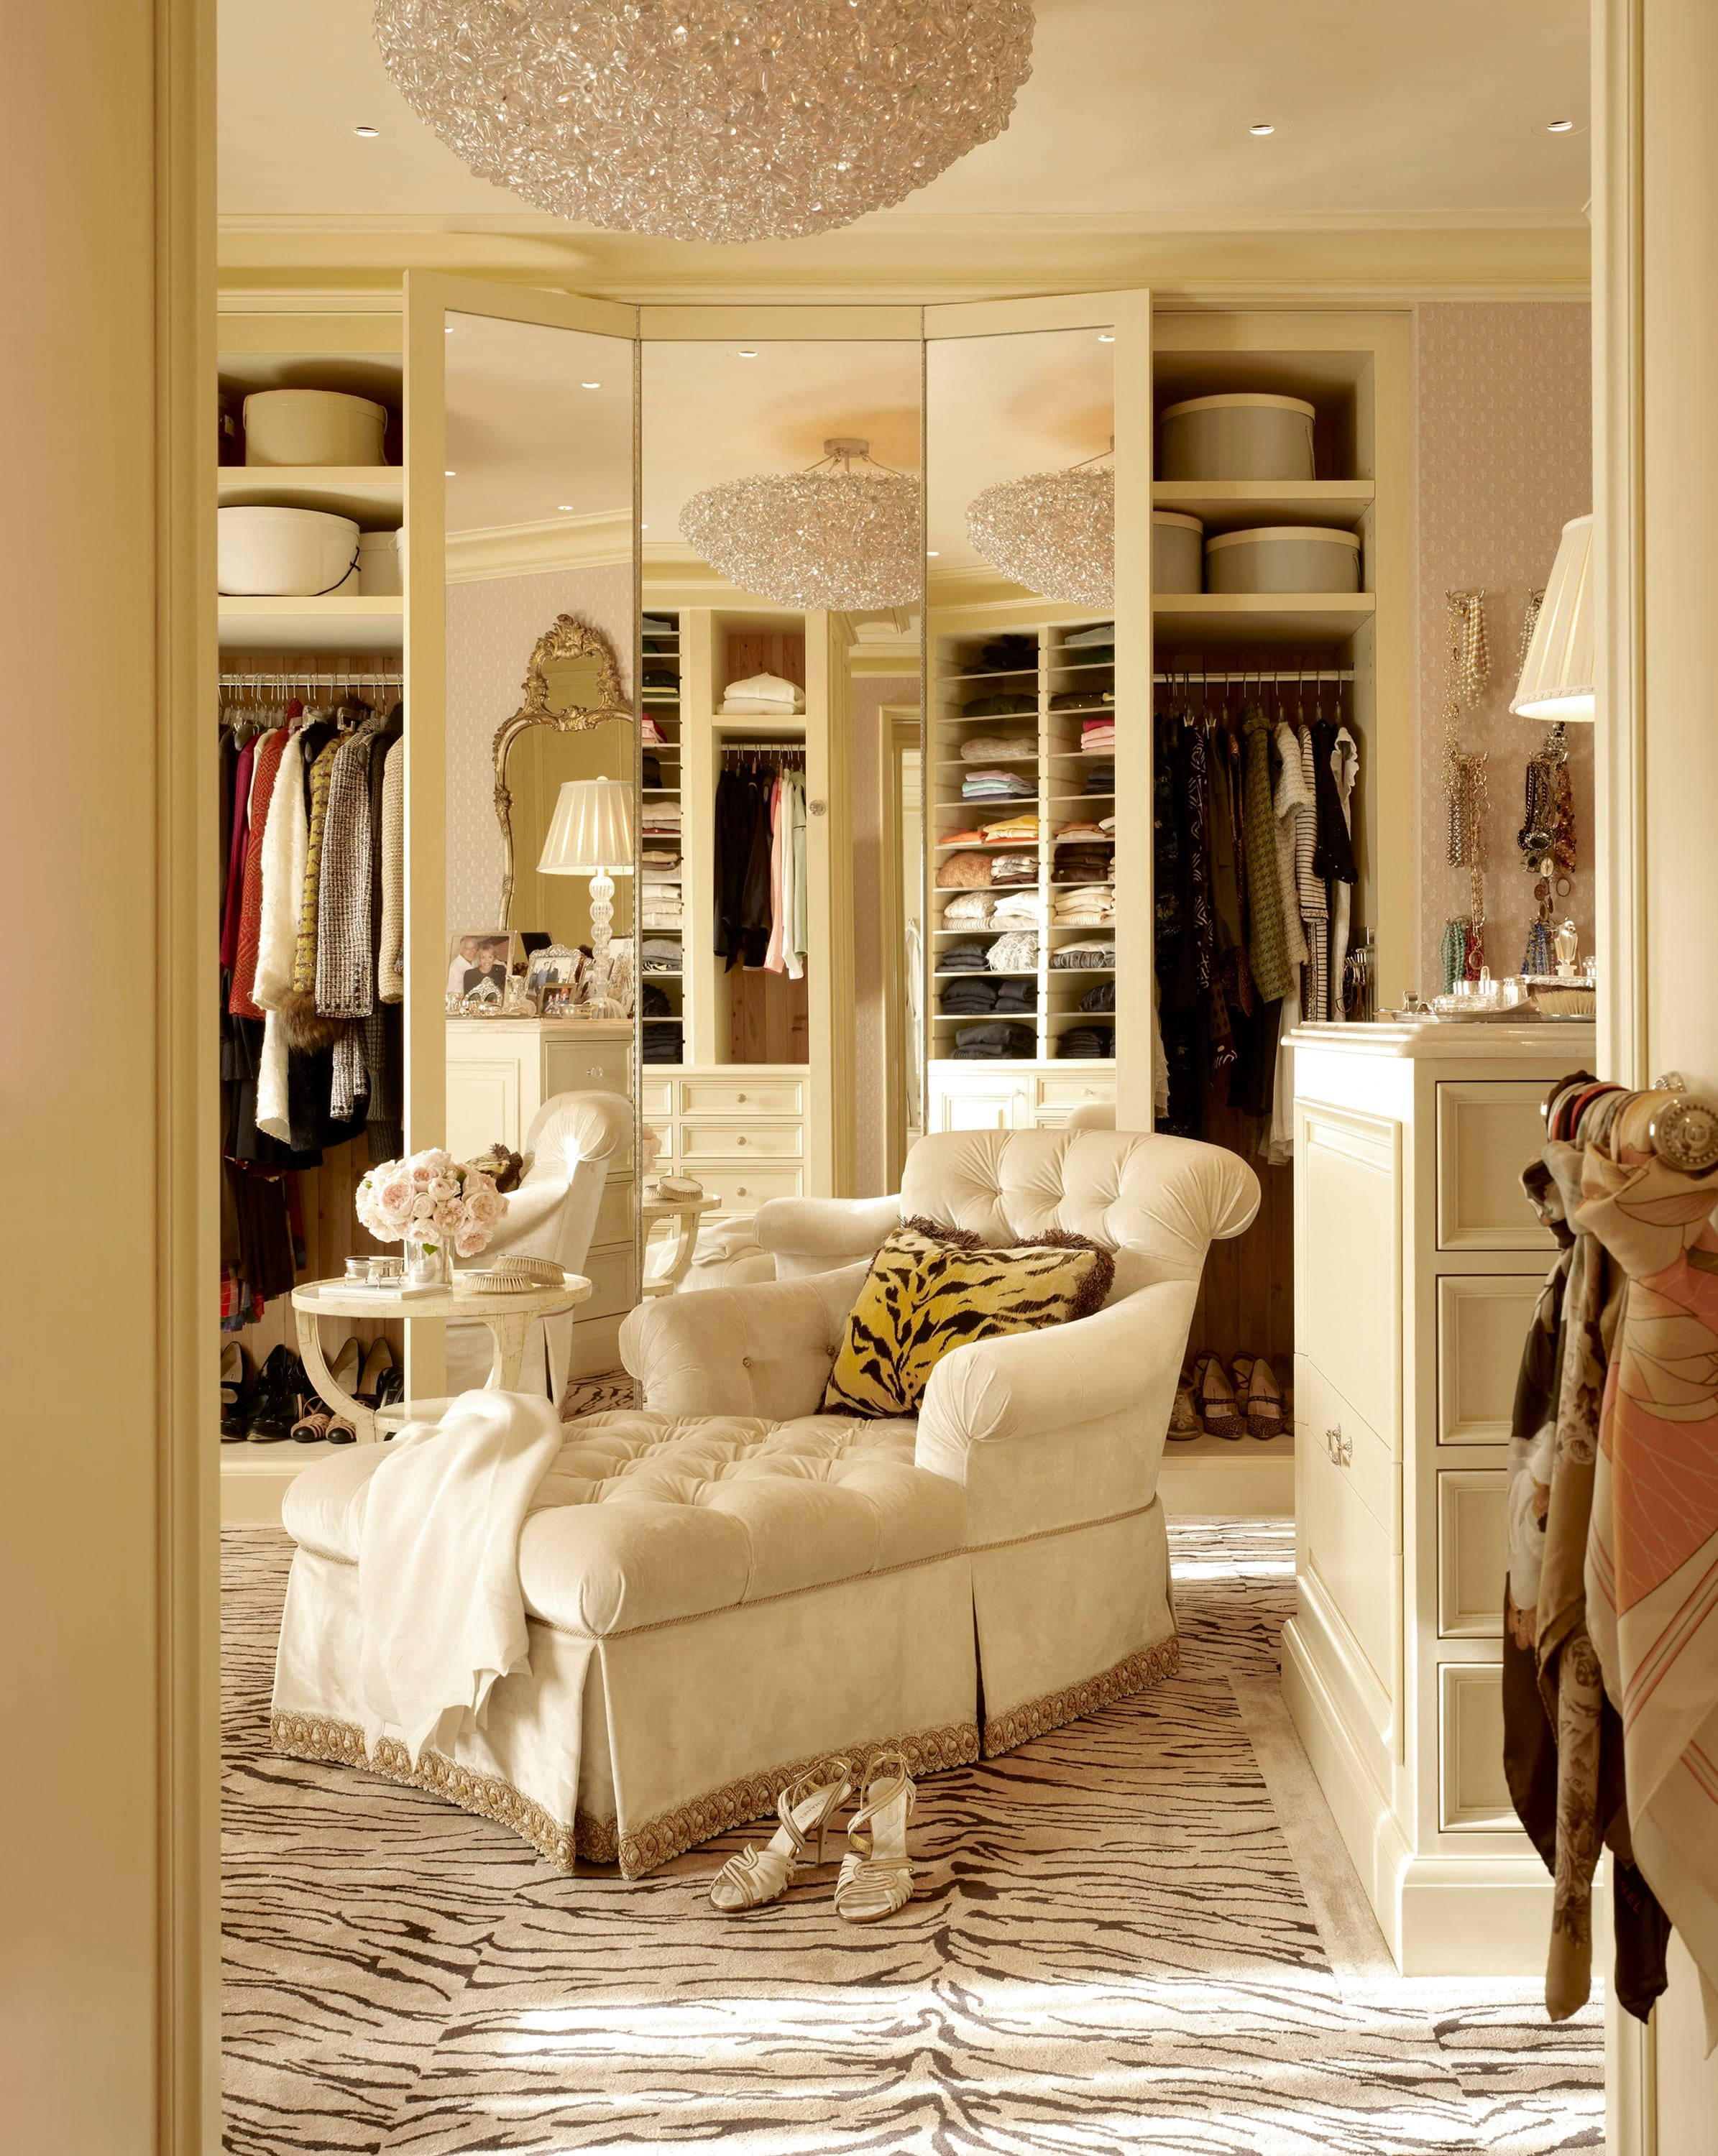 Dressing Room In A 6,000 Square Foot Apartment With A Traditional Decor.